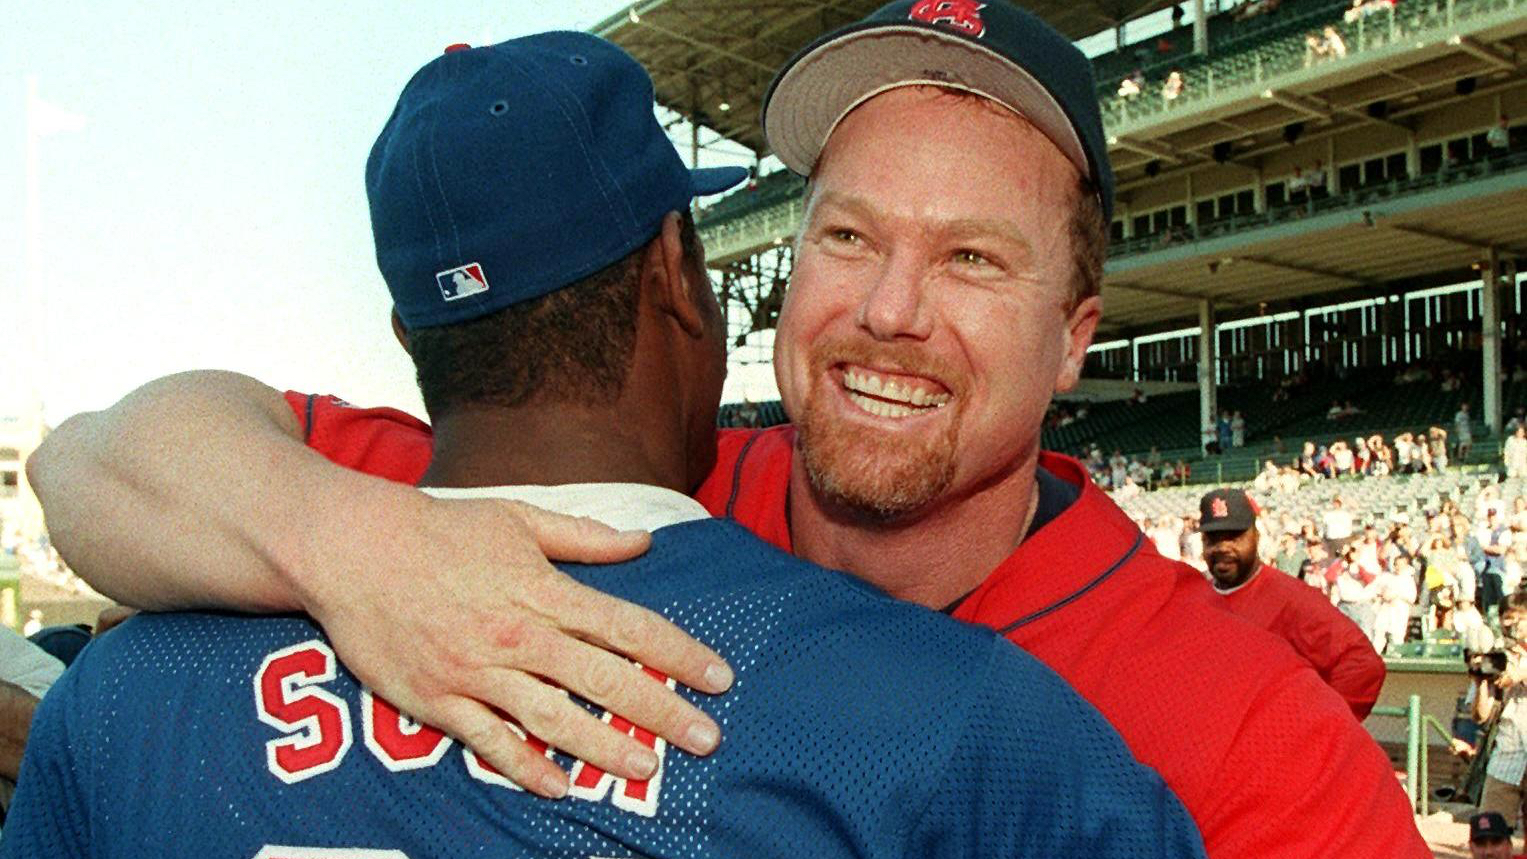 Sammy Sosa-Mark McGwire '30 for 30': What to know about ESPN's documentary on 1998 home run chase